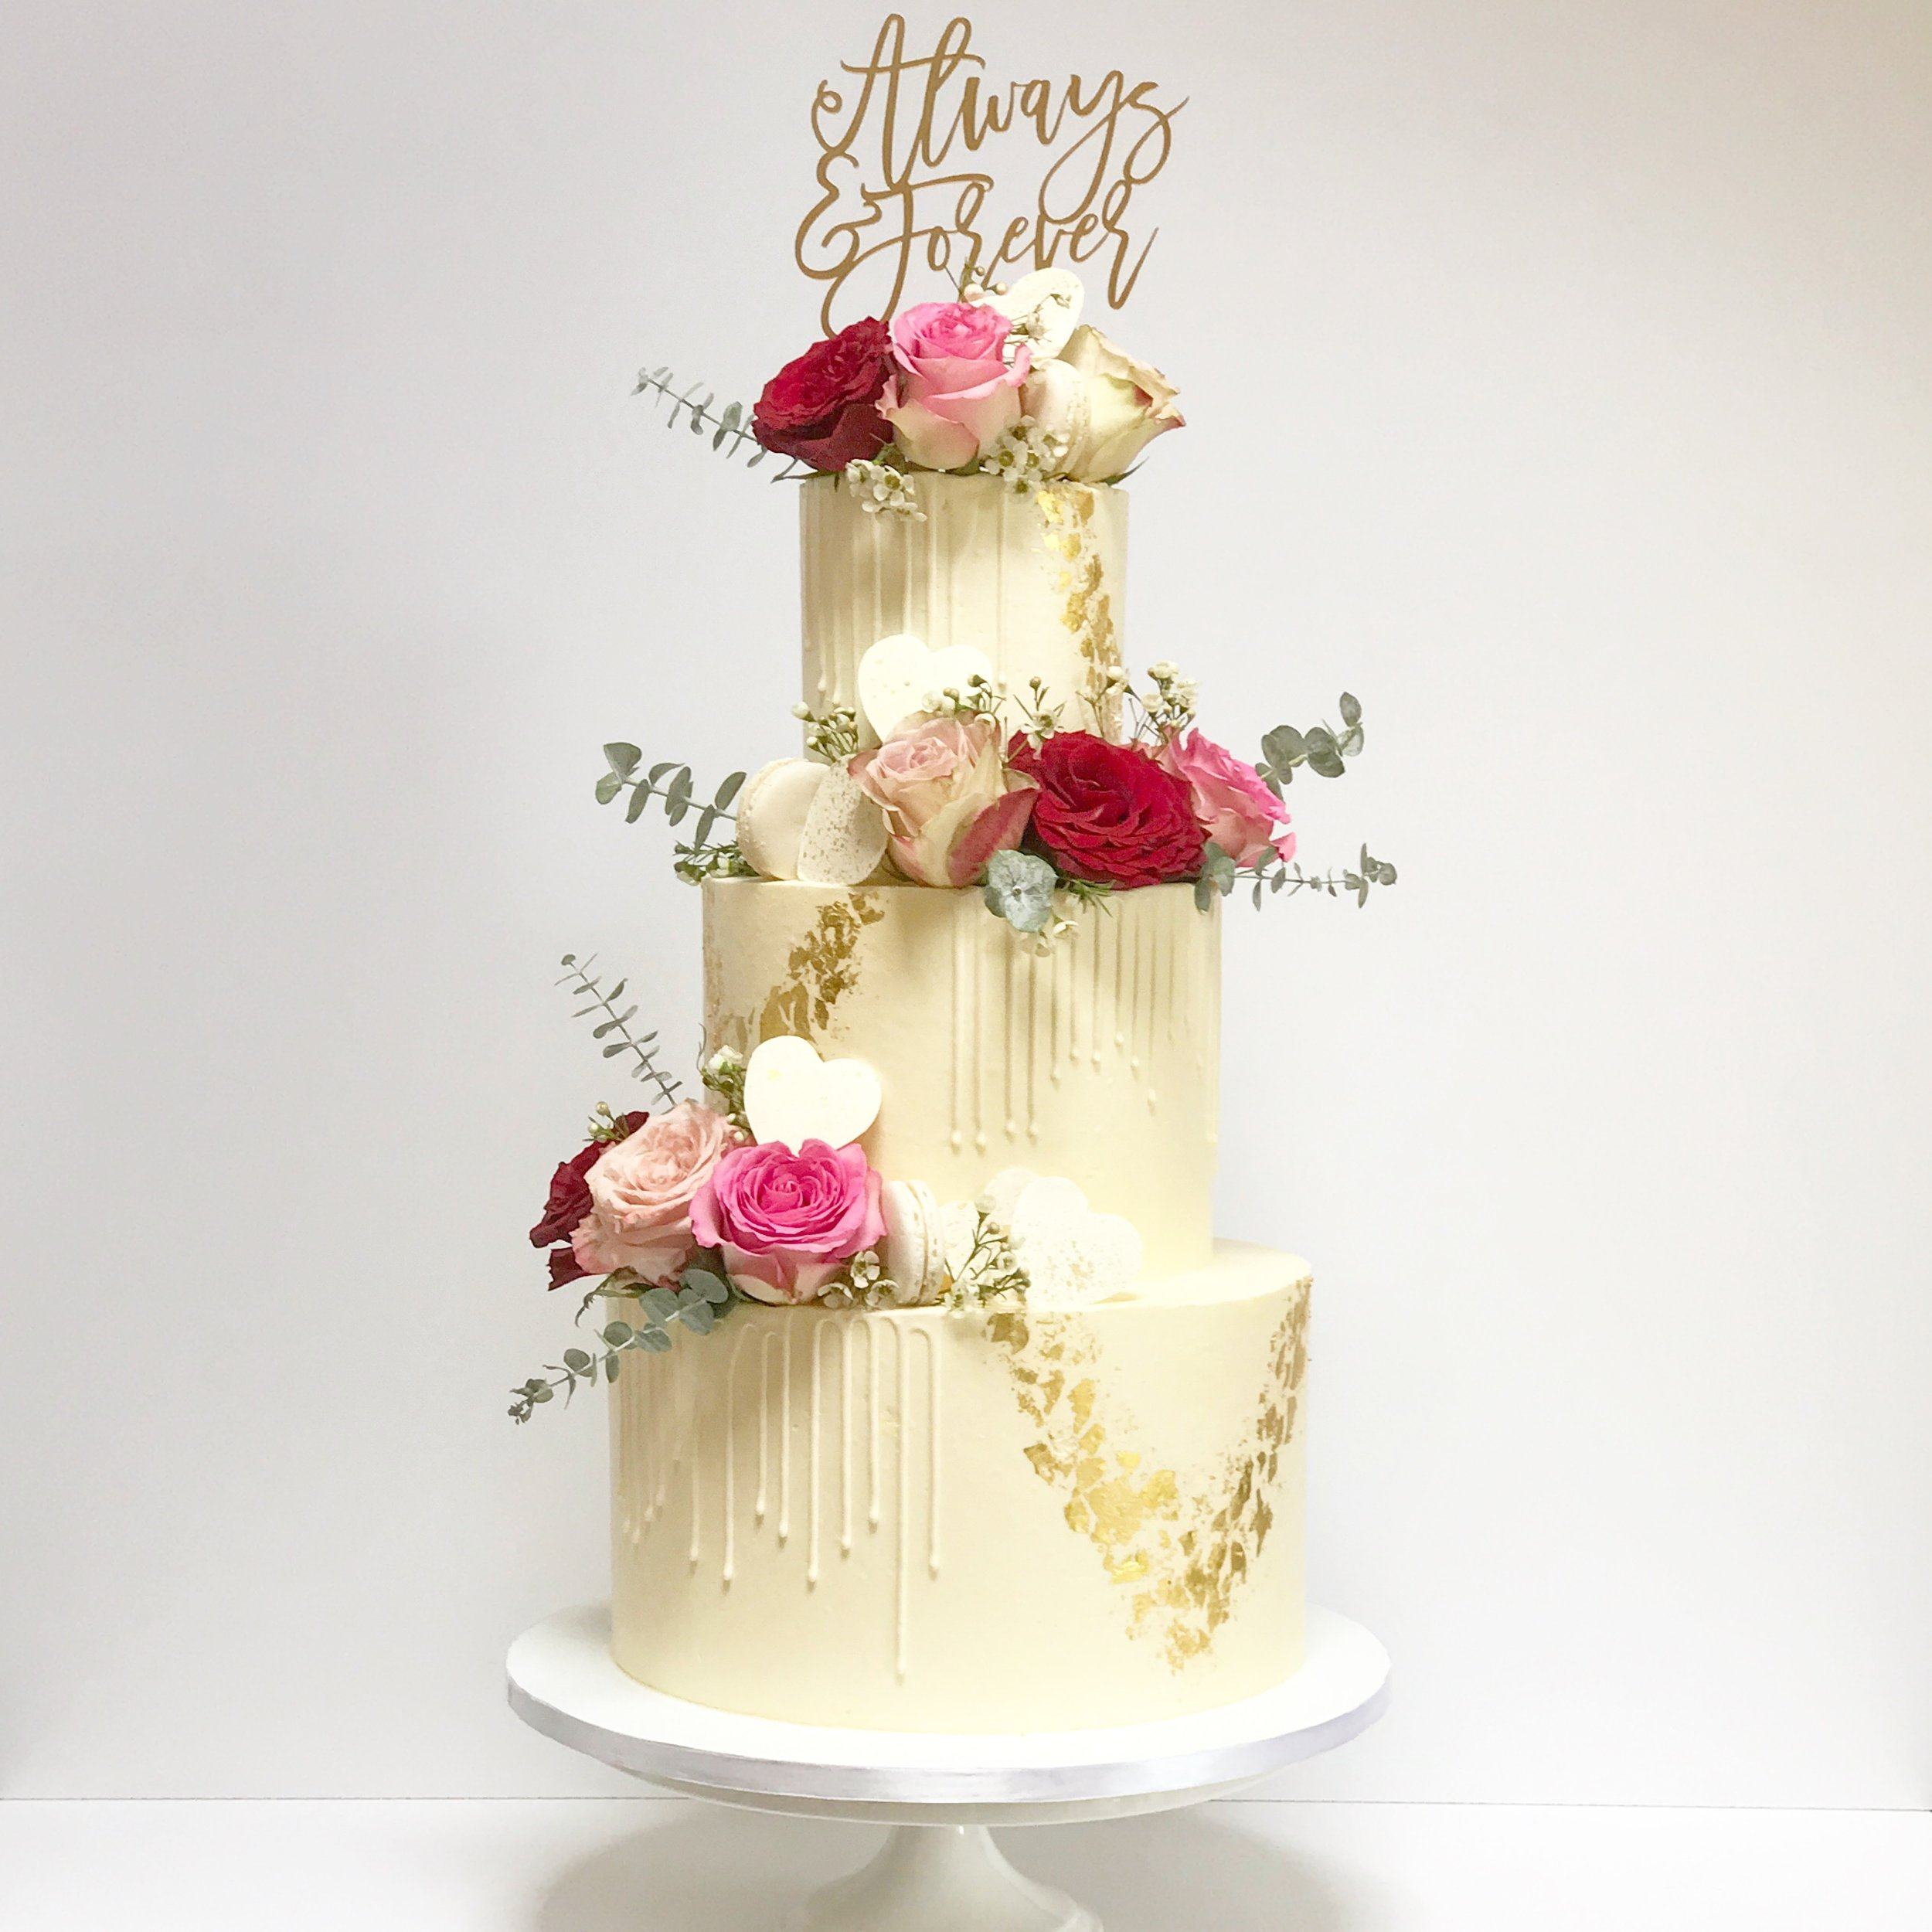 White on White Buttercream Drip Wedding Cake with Flowers.JPG